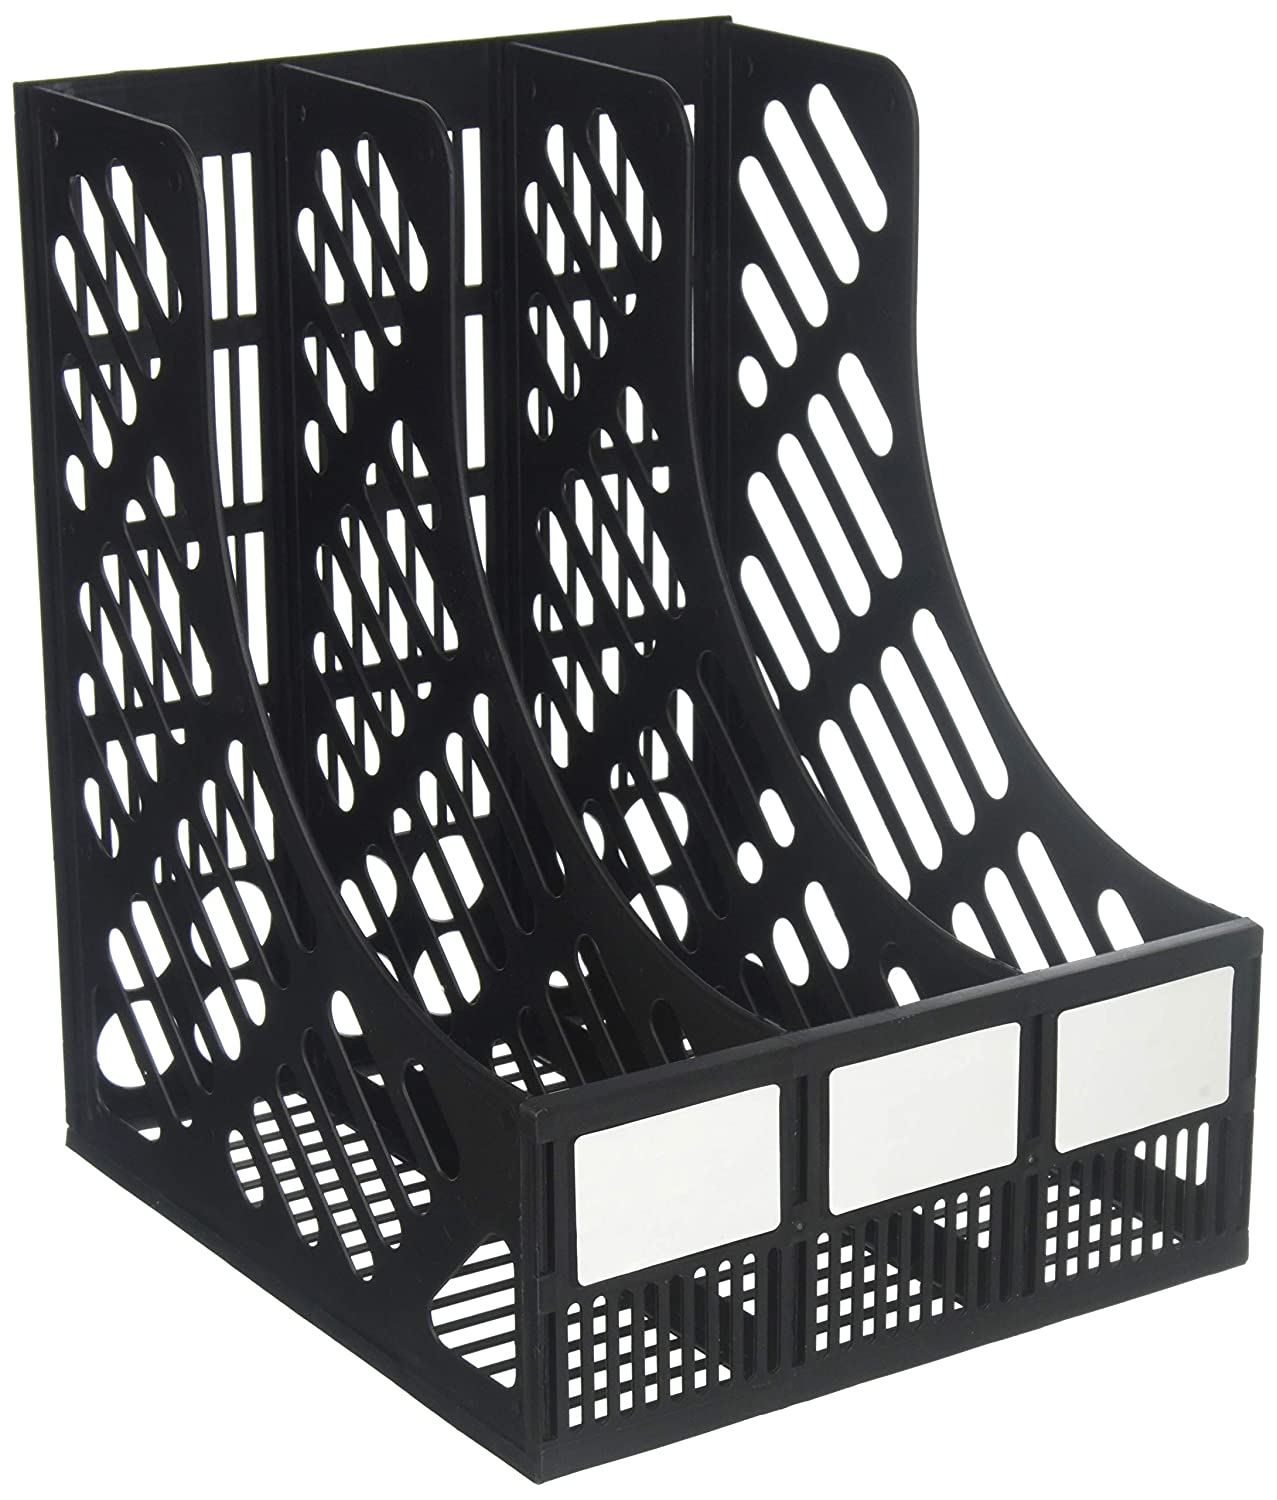 Evelots 3-Compartment File & Magazine Desktop Rack Holder Organizer, Black Green Mountain Imports 3351